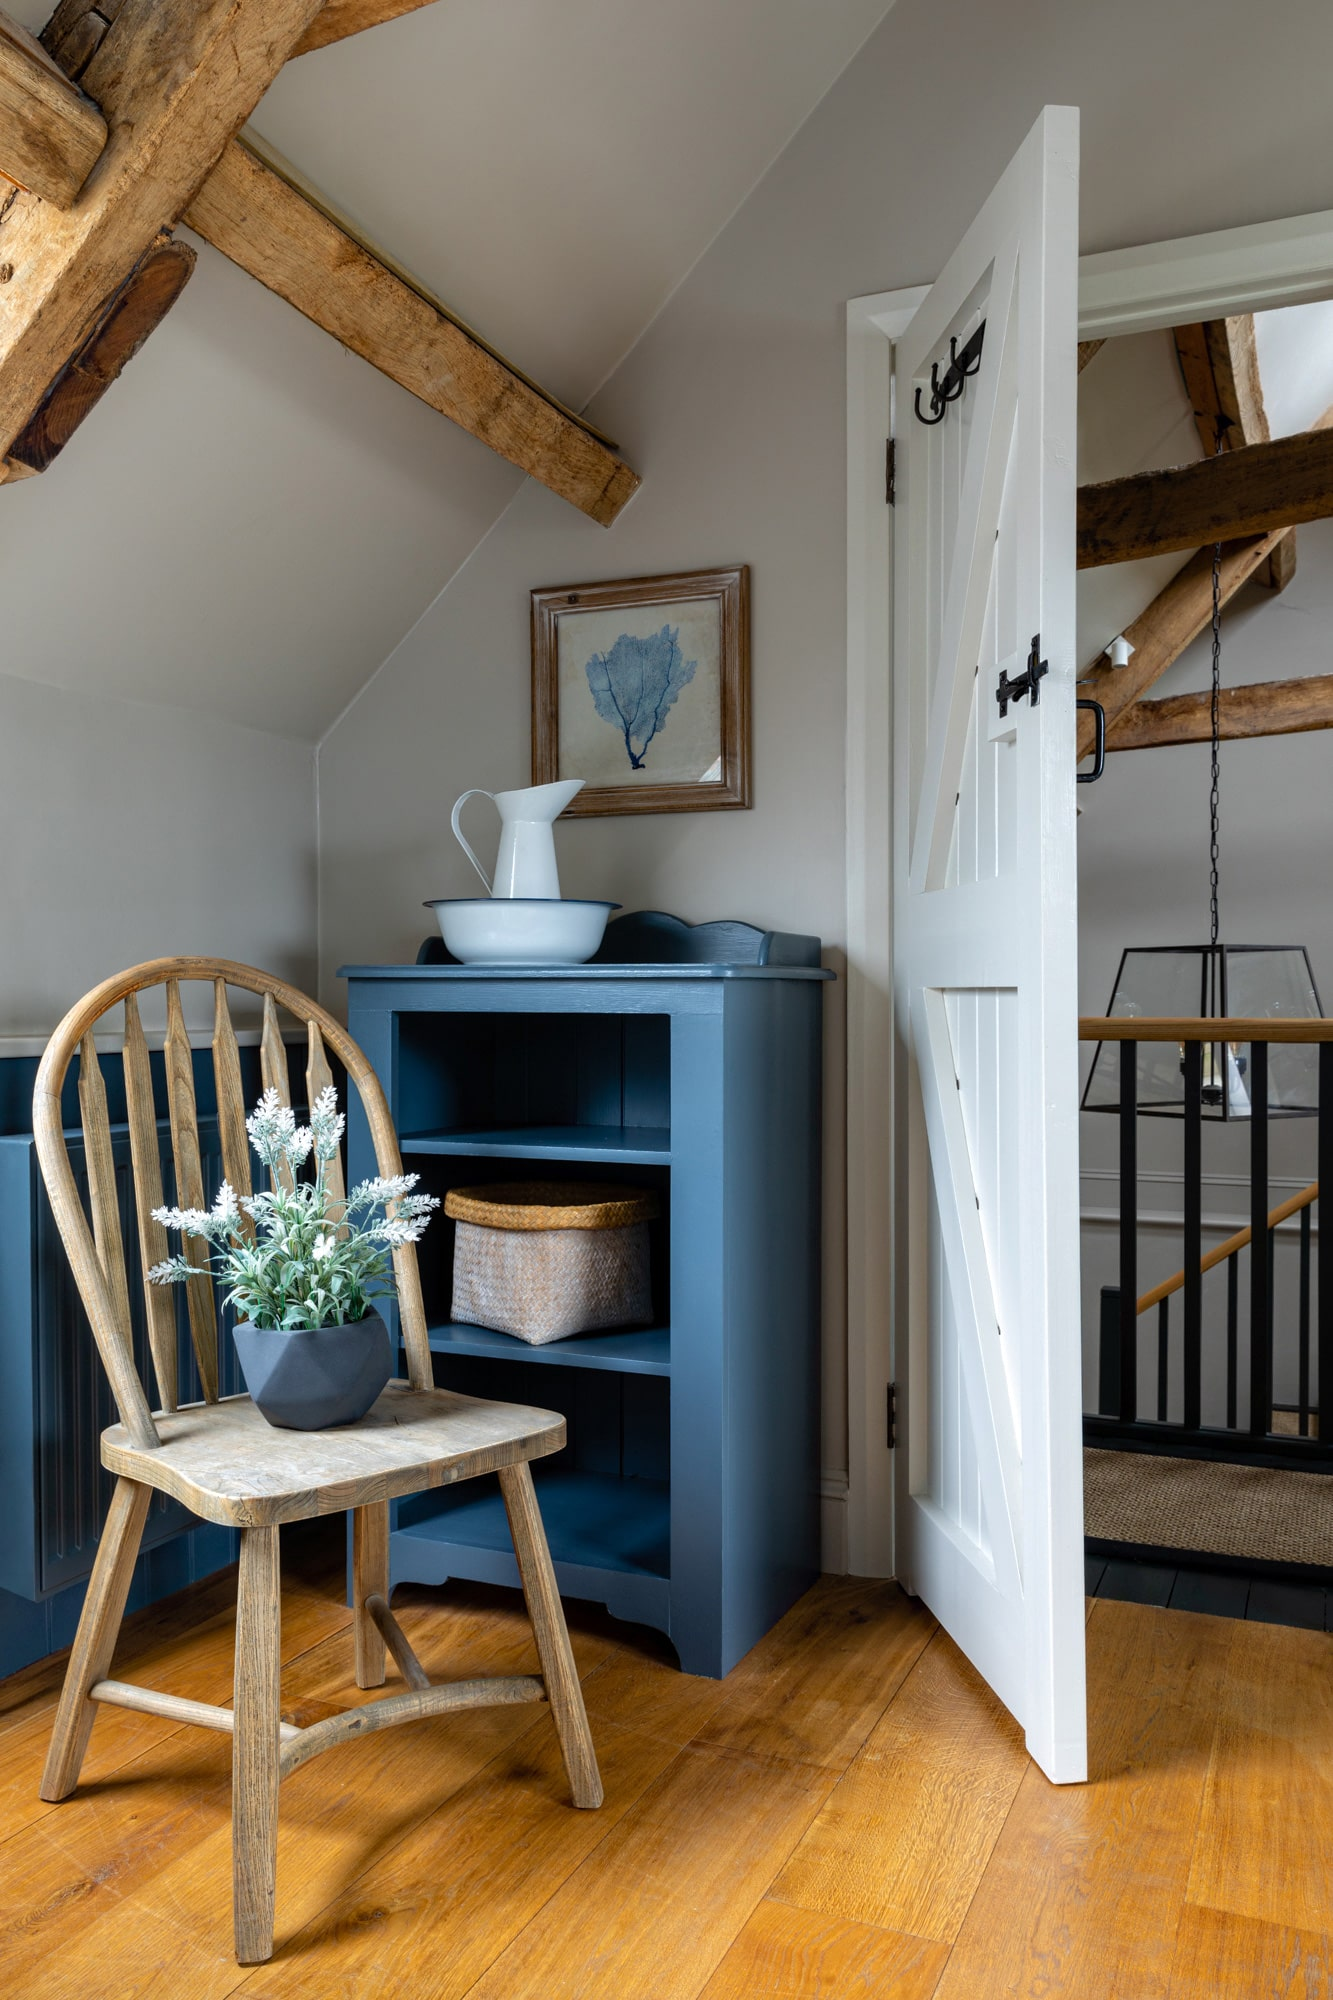 bathroom detail shot: open white door; a chair with a flower pot on it, blue shelving unit by the door